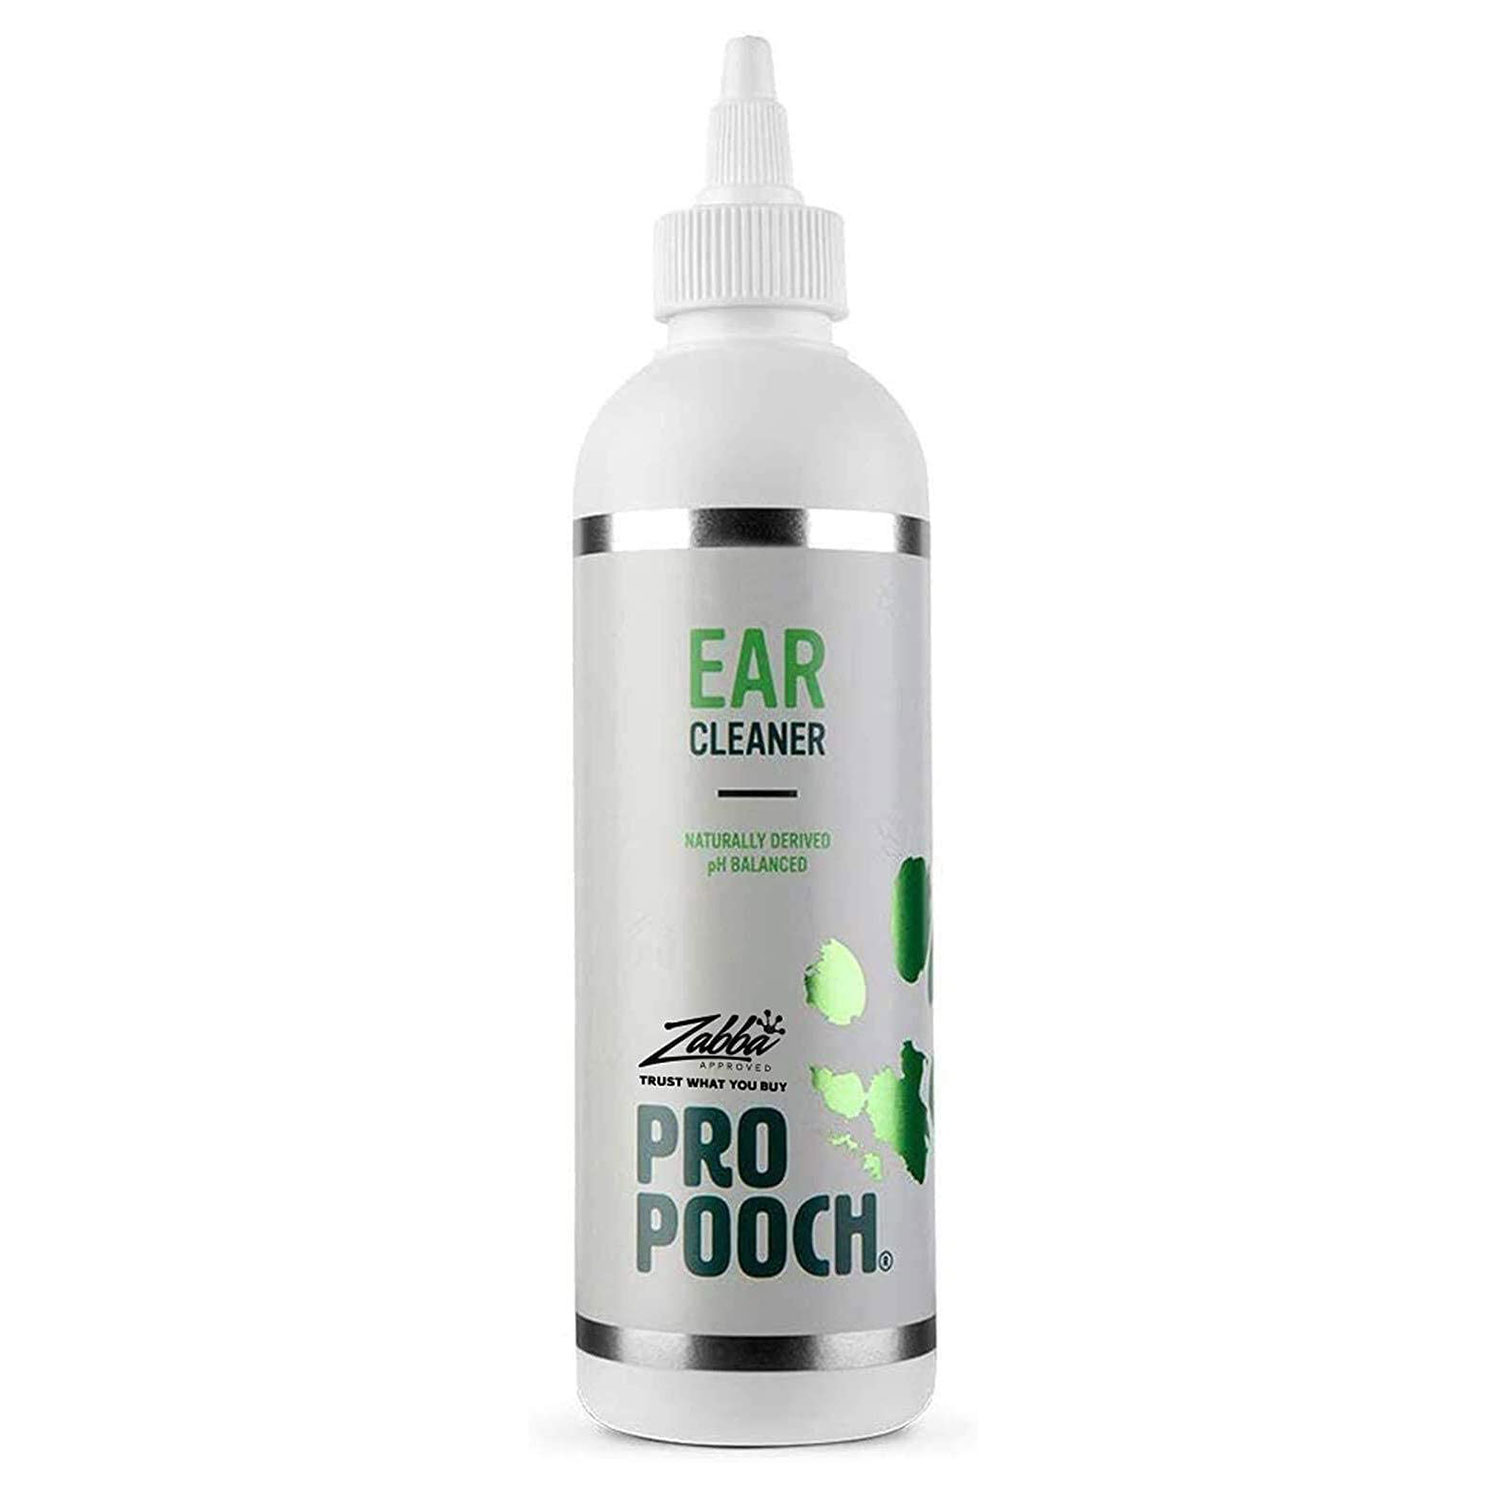 Pro Pooch Dog Ear Cleaner Drops to Stop Head Shaking